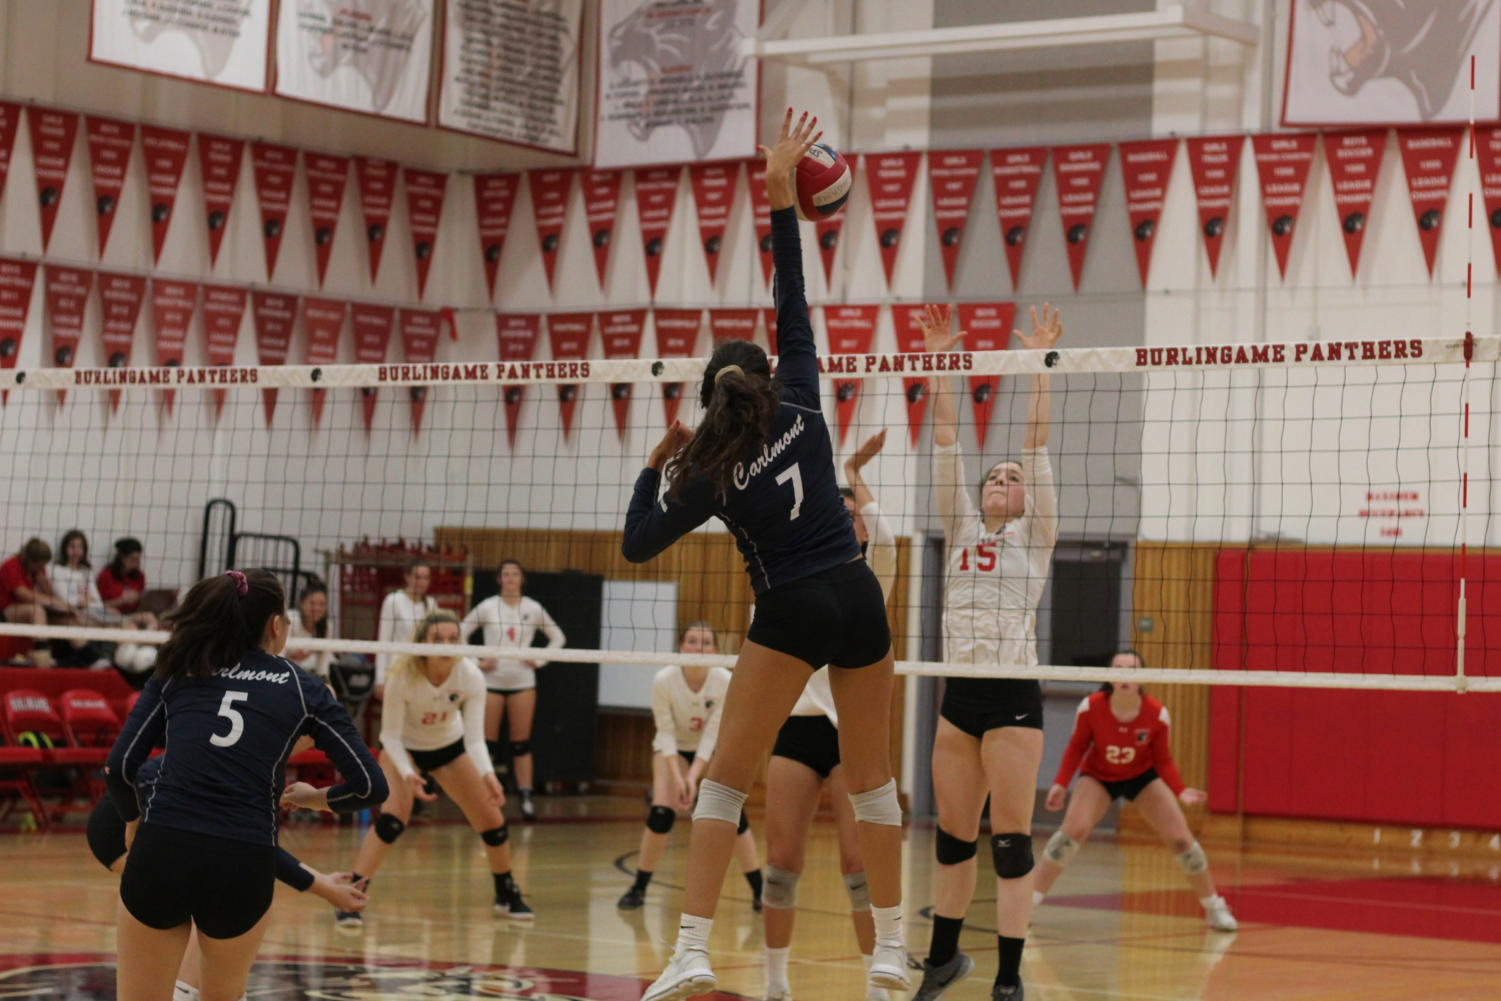 Alisha Mitha, a junior, spikes the ball against the Burlingame Panthers in the fifth set.